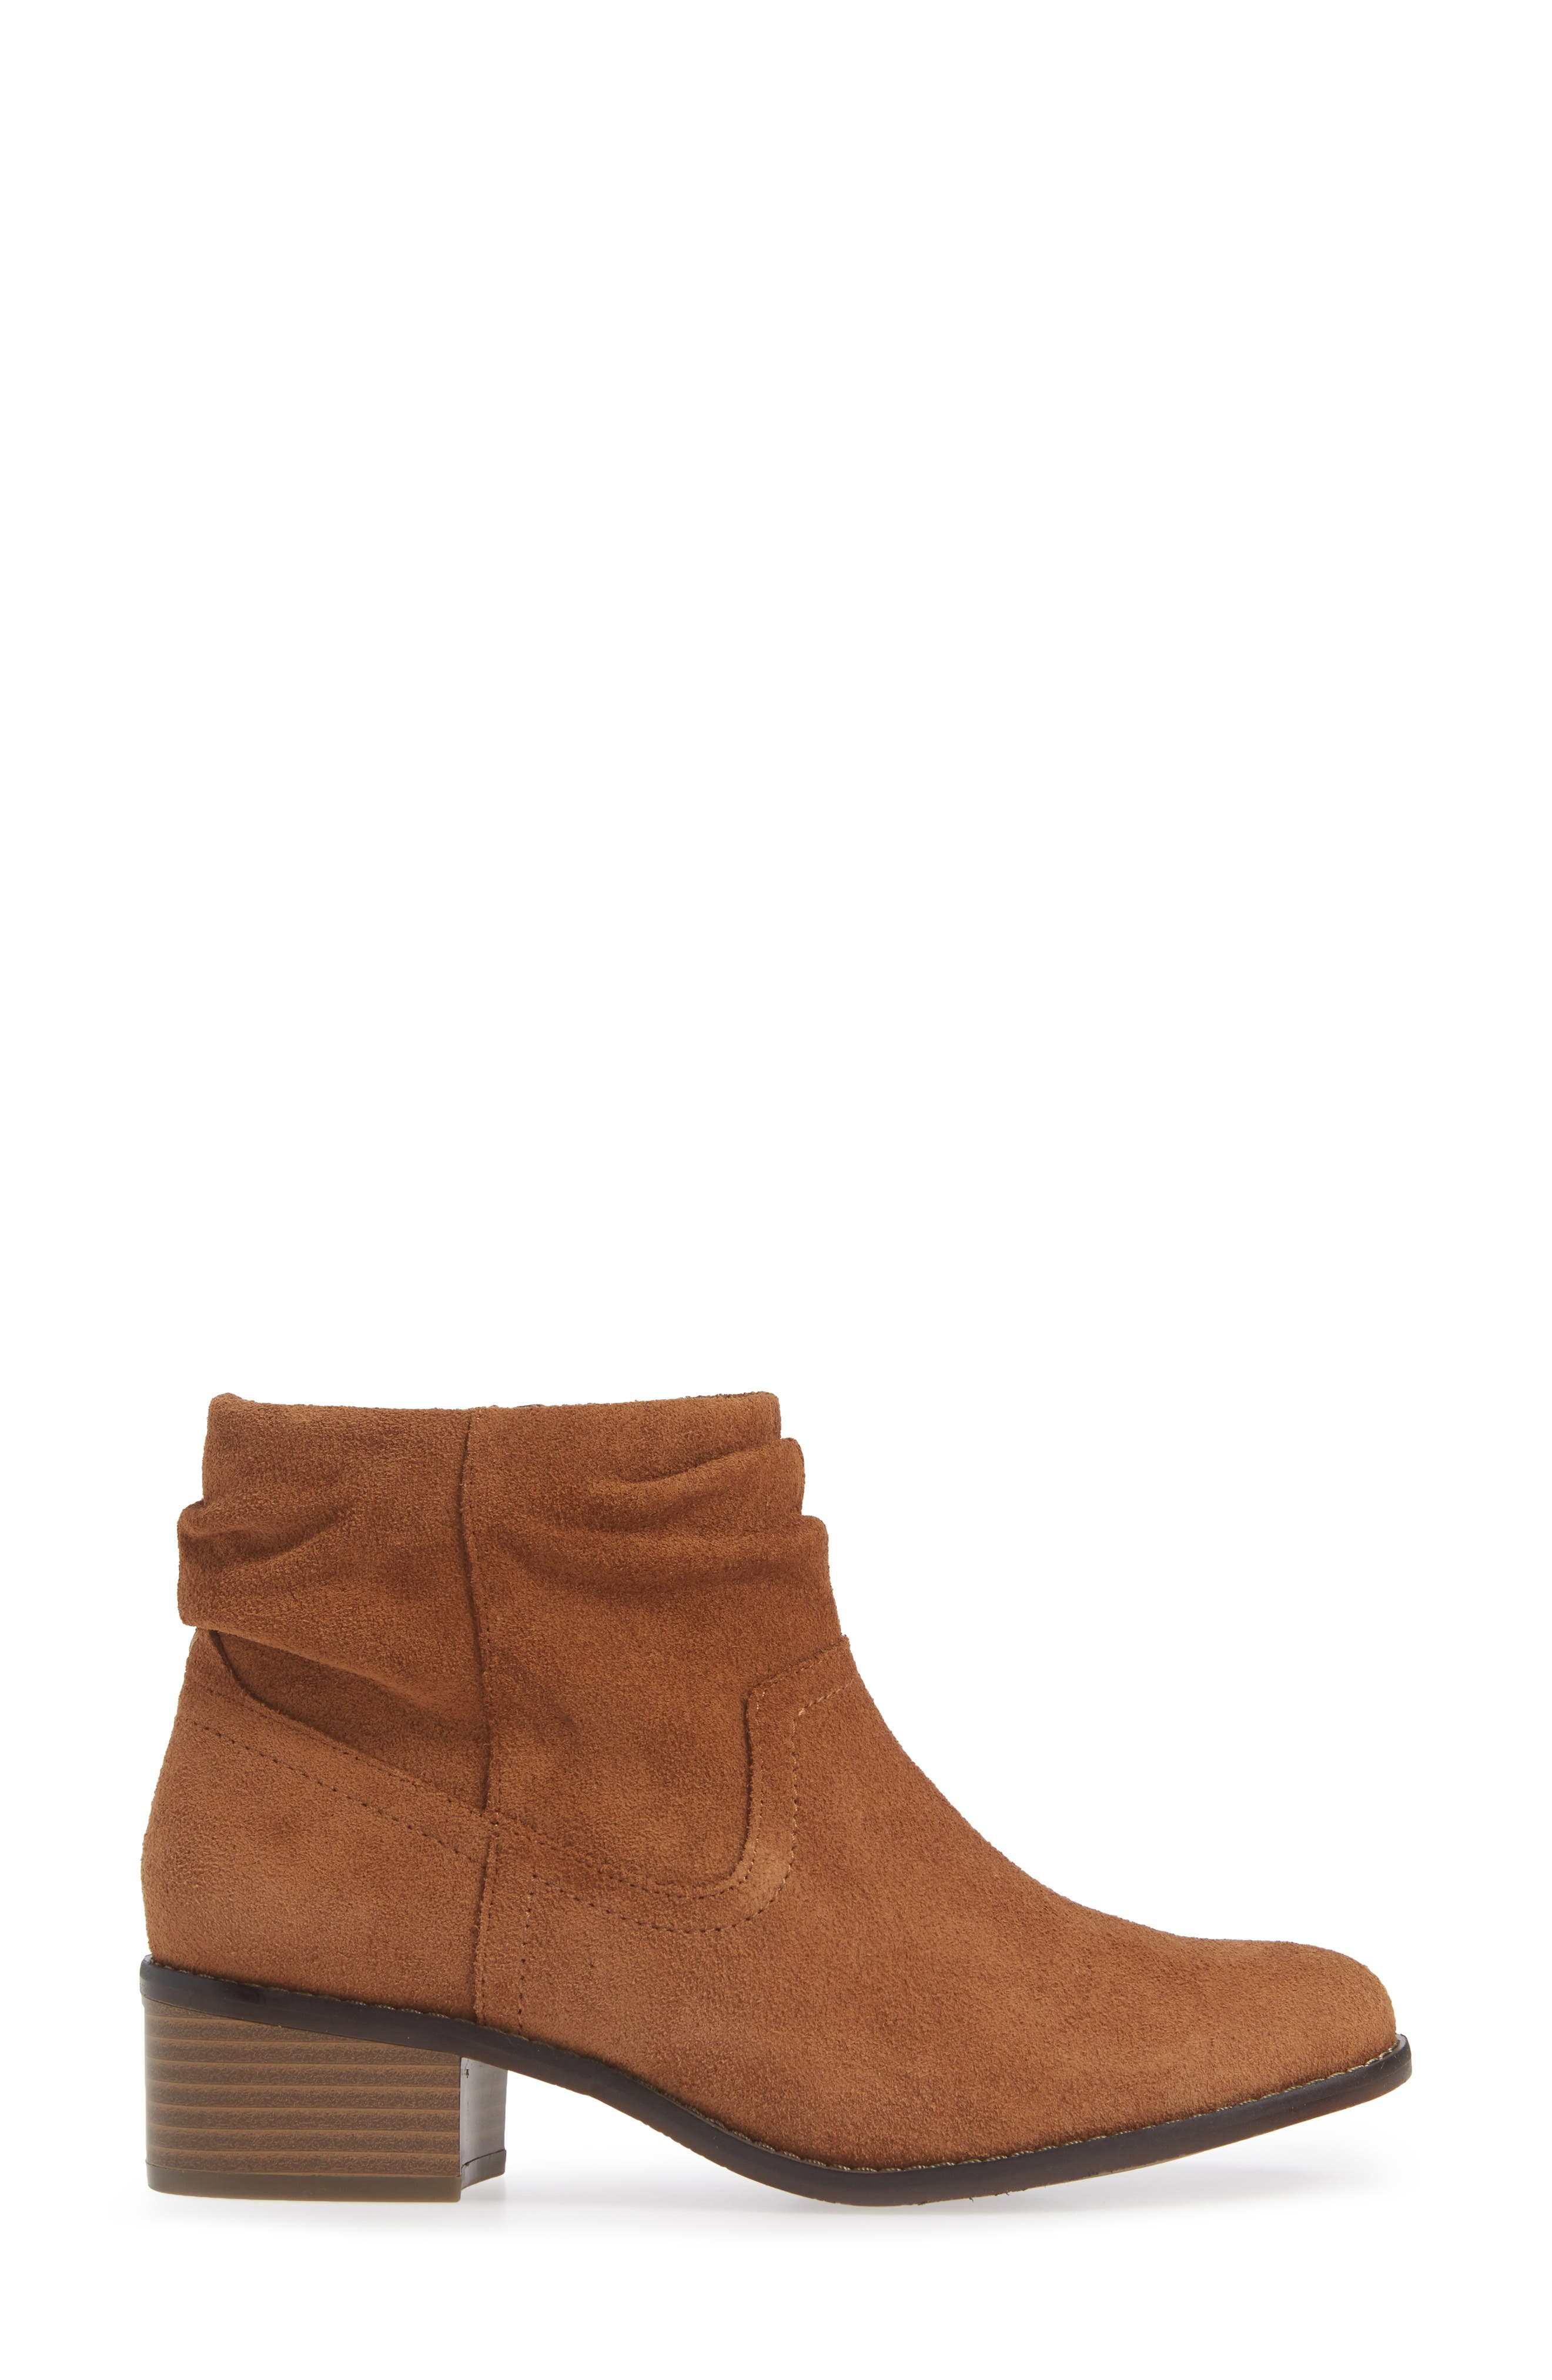 Kanela Low Slouchy Bootie,                             Alternate thumbnail 3, color,                             TOFFEE SUEDE